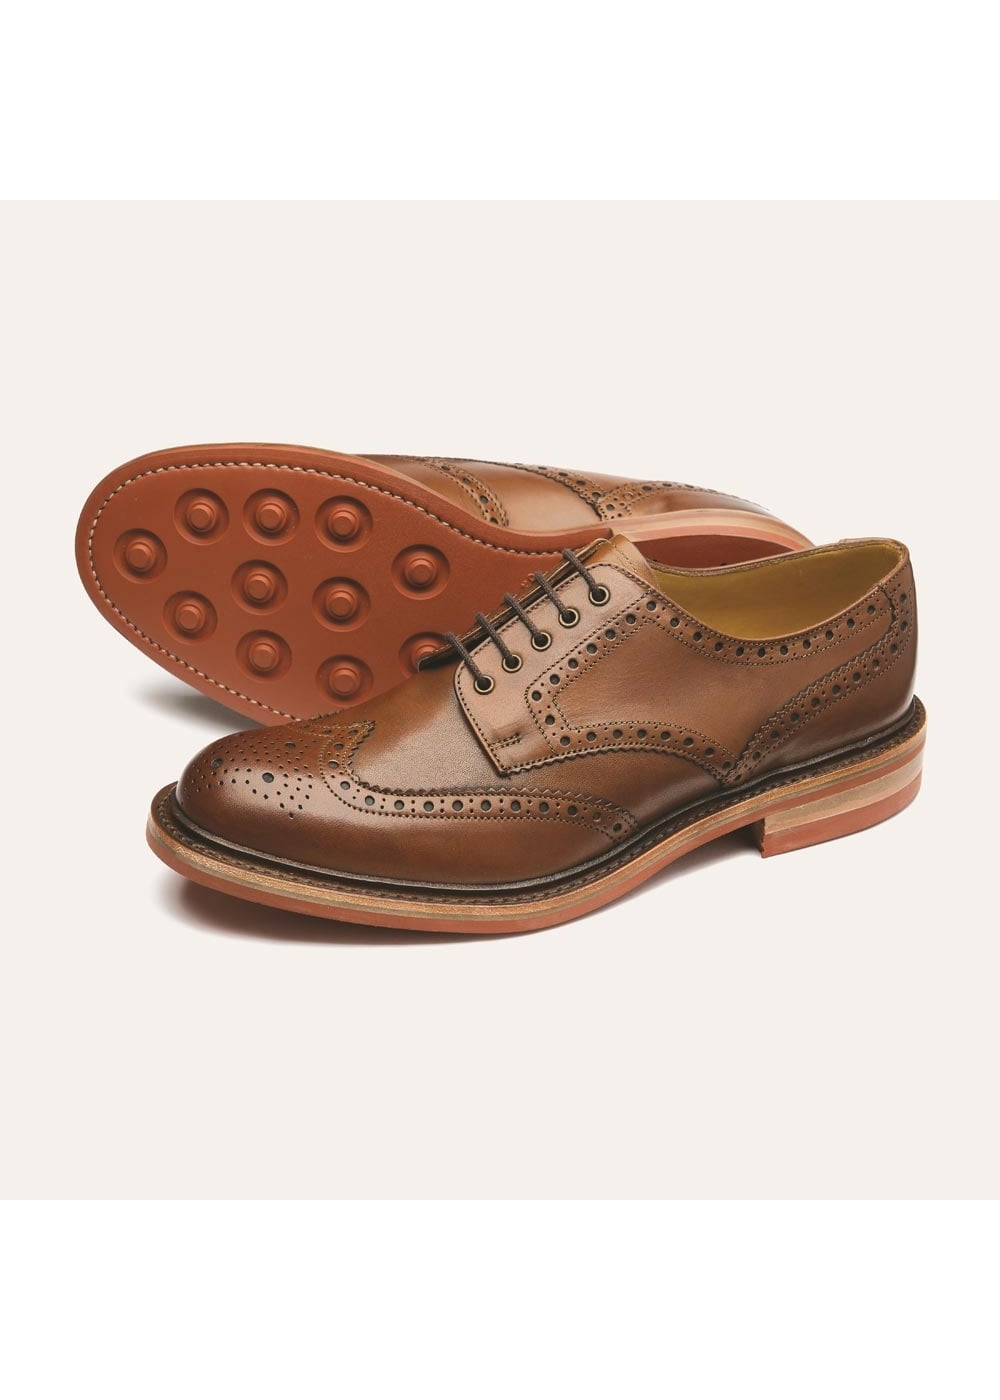 Loake Worton Brogue Shoe NEW Large Image